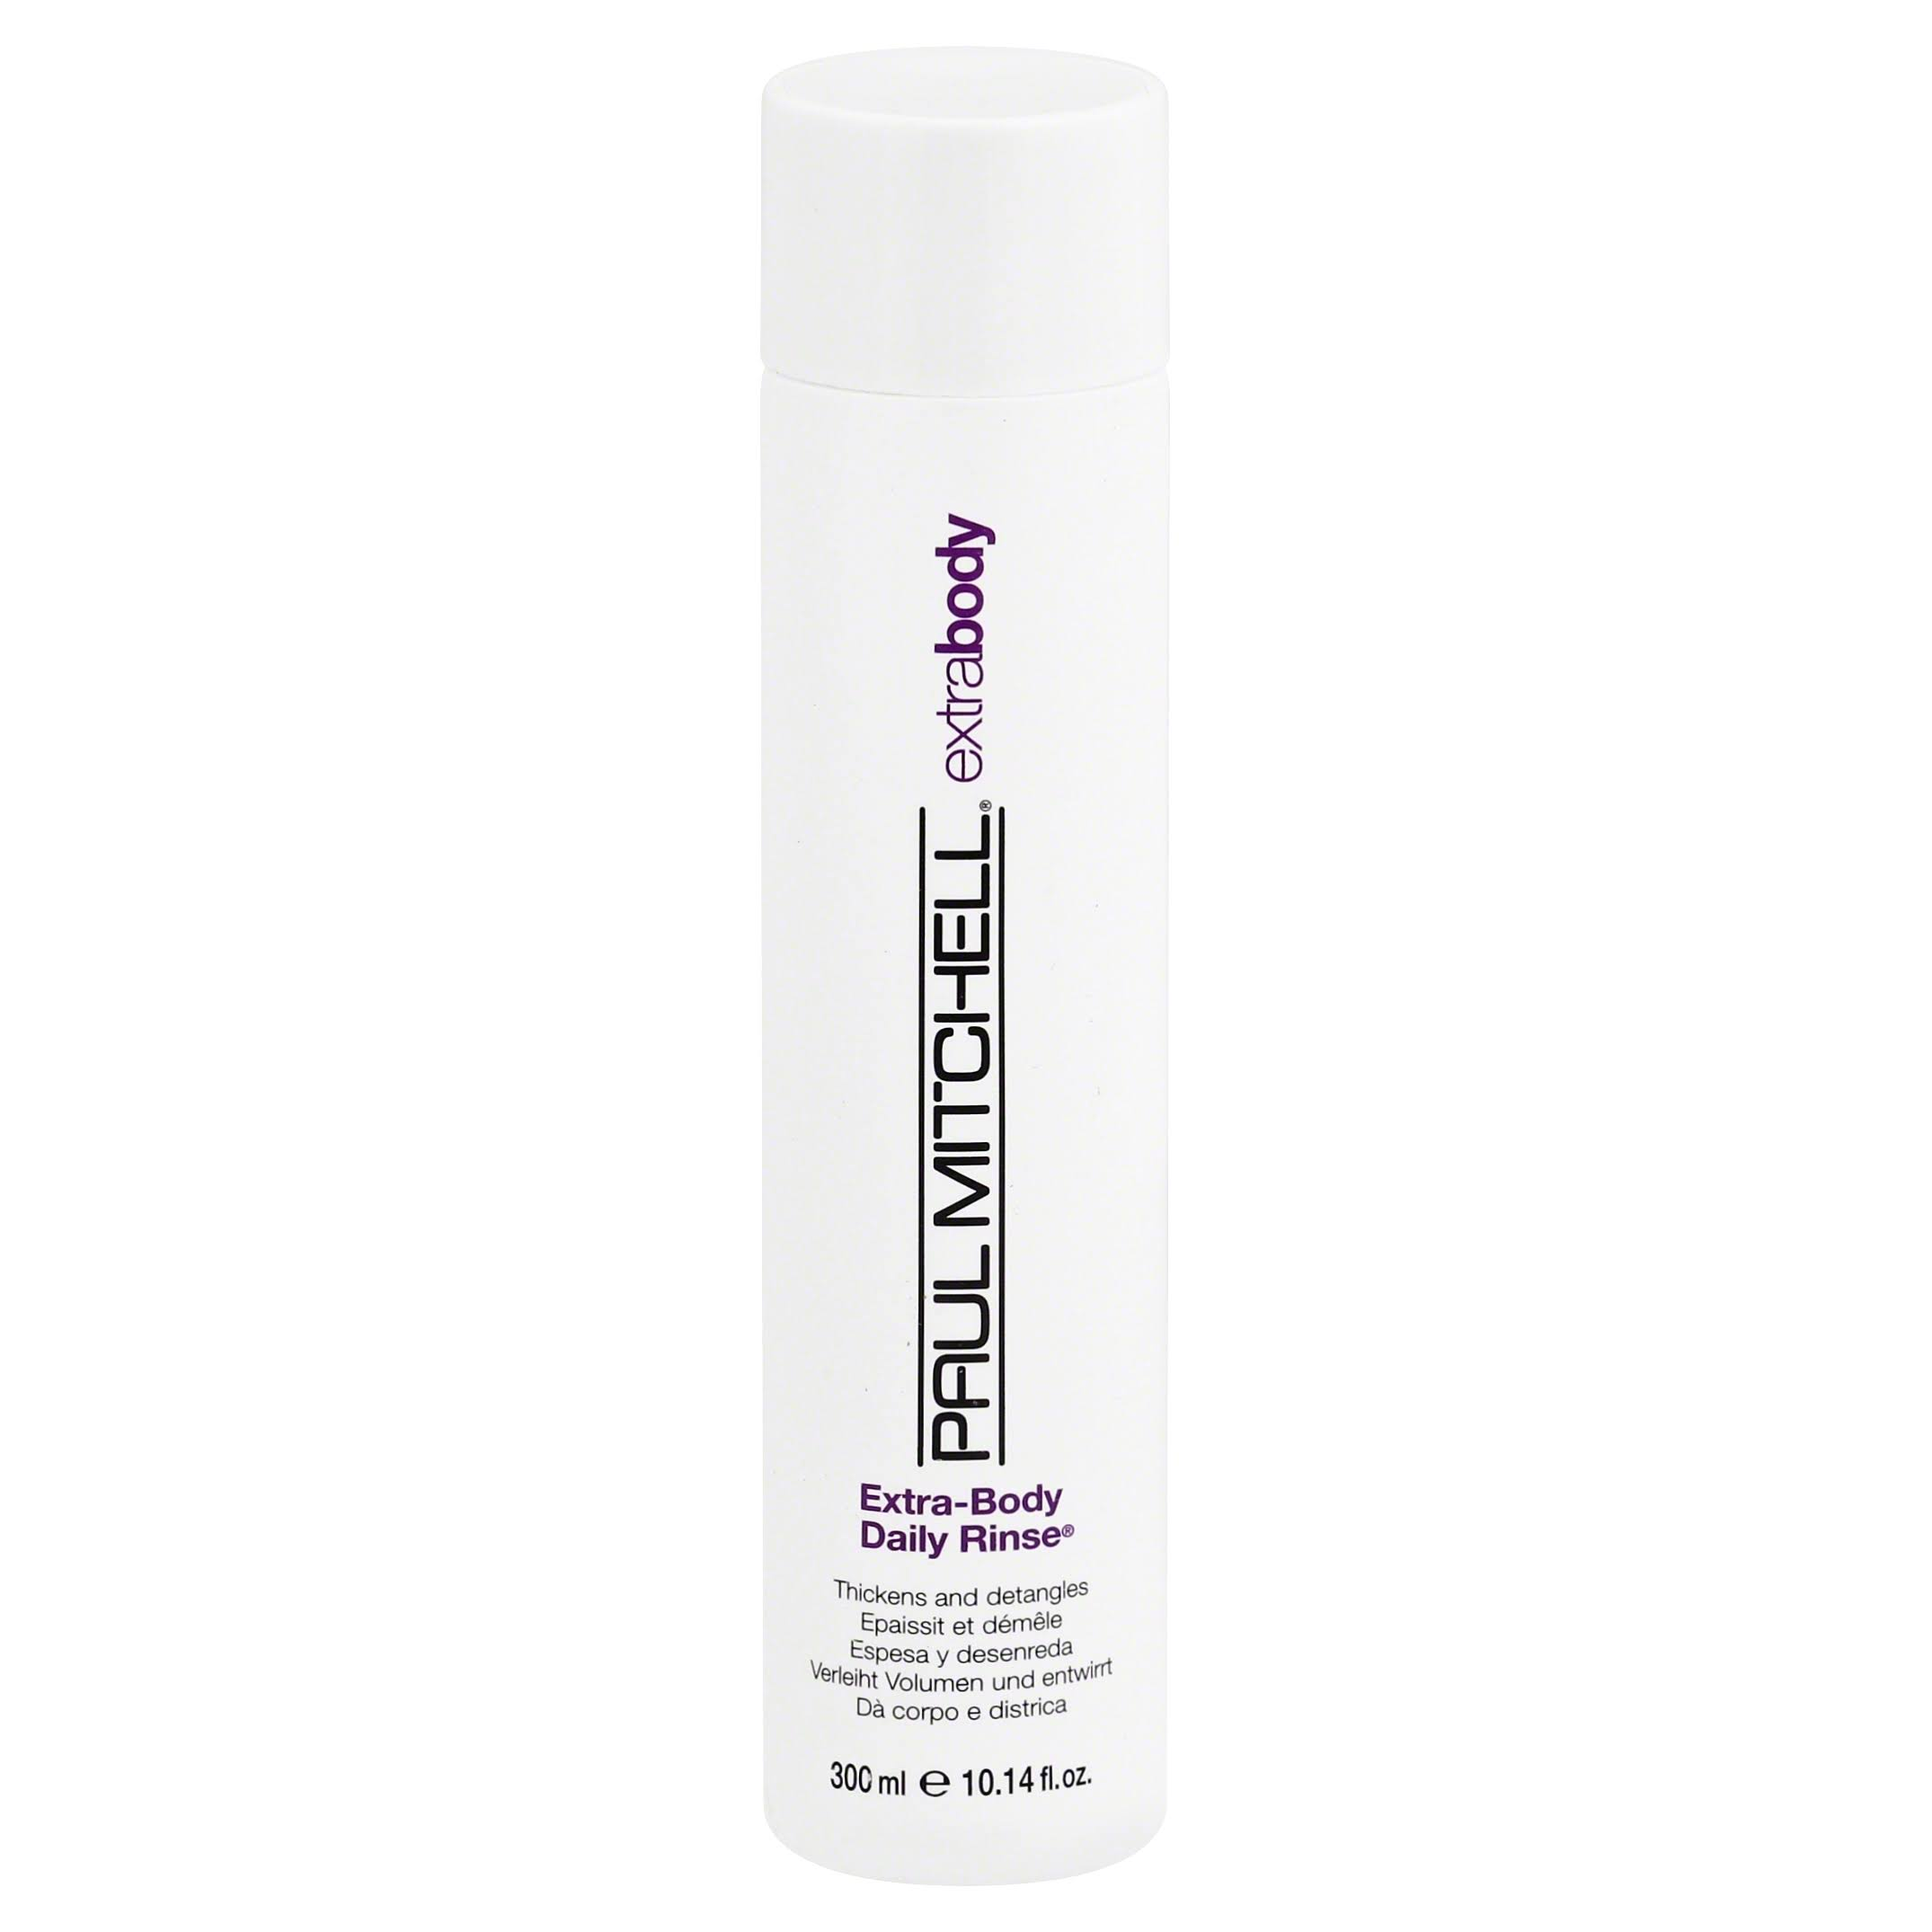 Paul Mitchell Extra-body Daily Rinse - Thickens and Detangles, 10.14oz